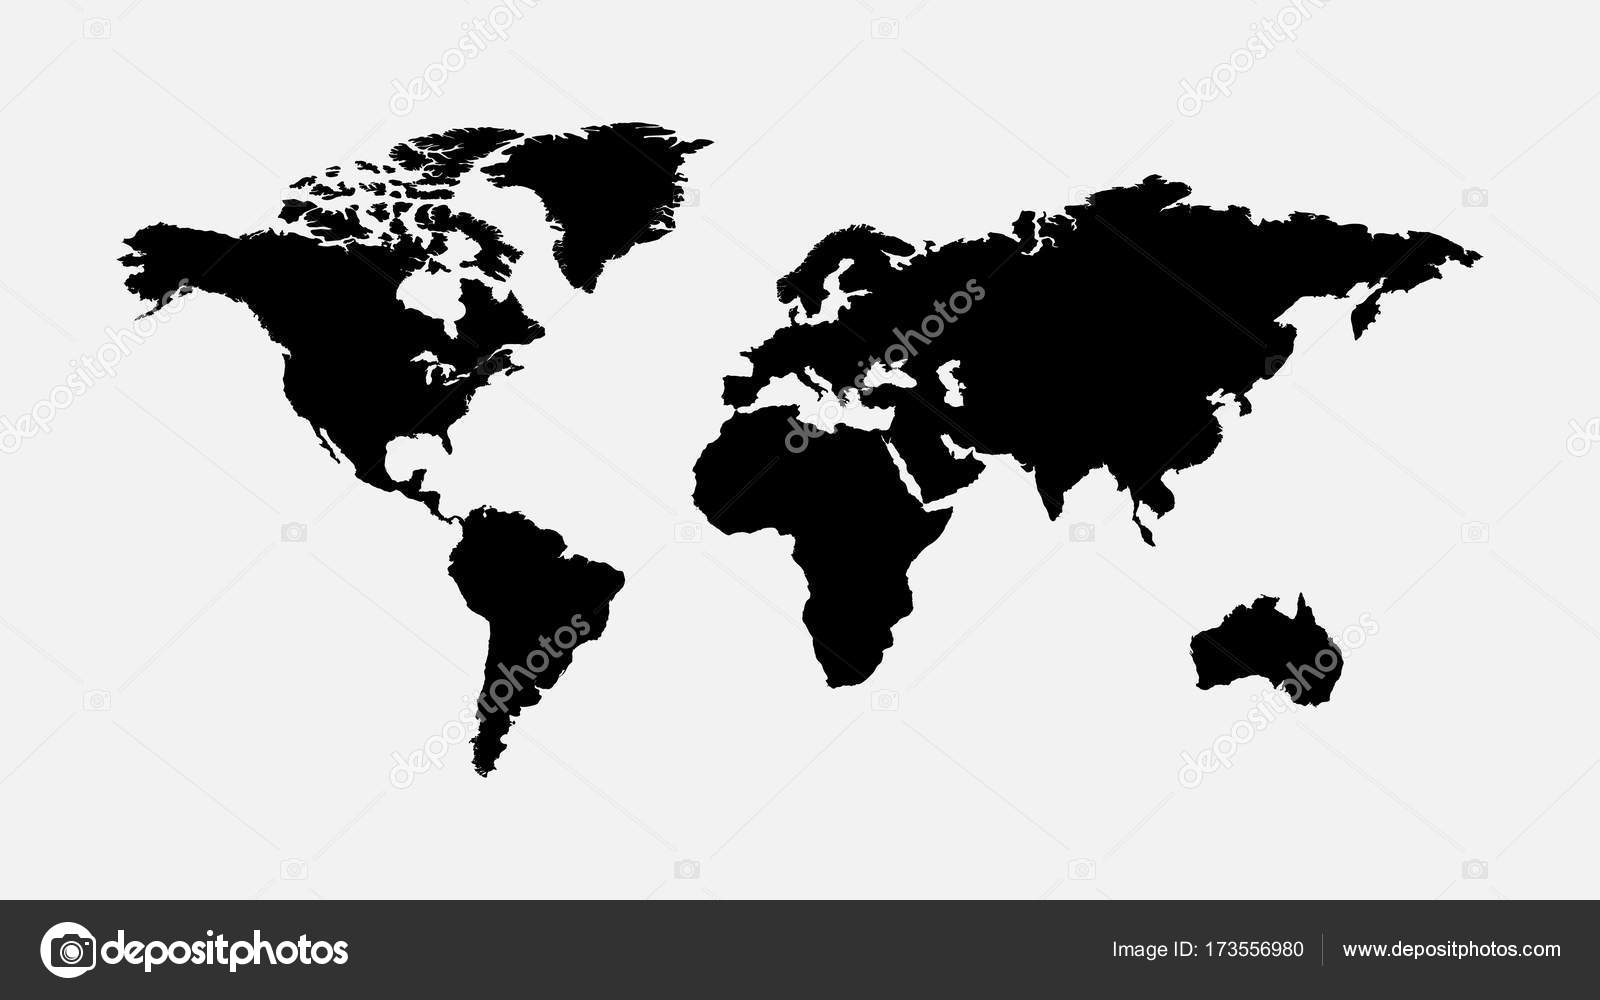 Blank grey world map isolated on white background best popular blank grey world map isolated on white background best popular world map vector globe template gumiabroncs Images